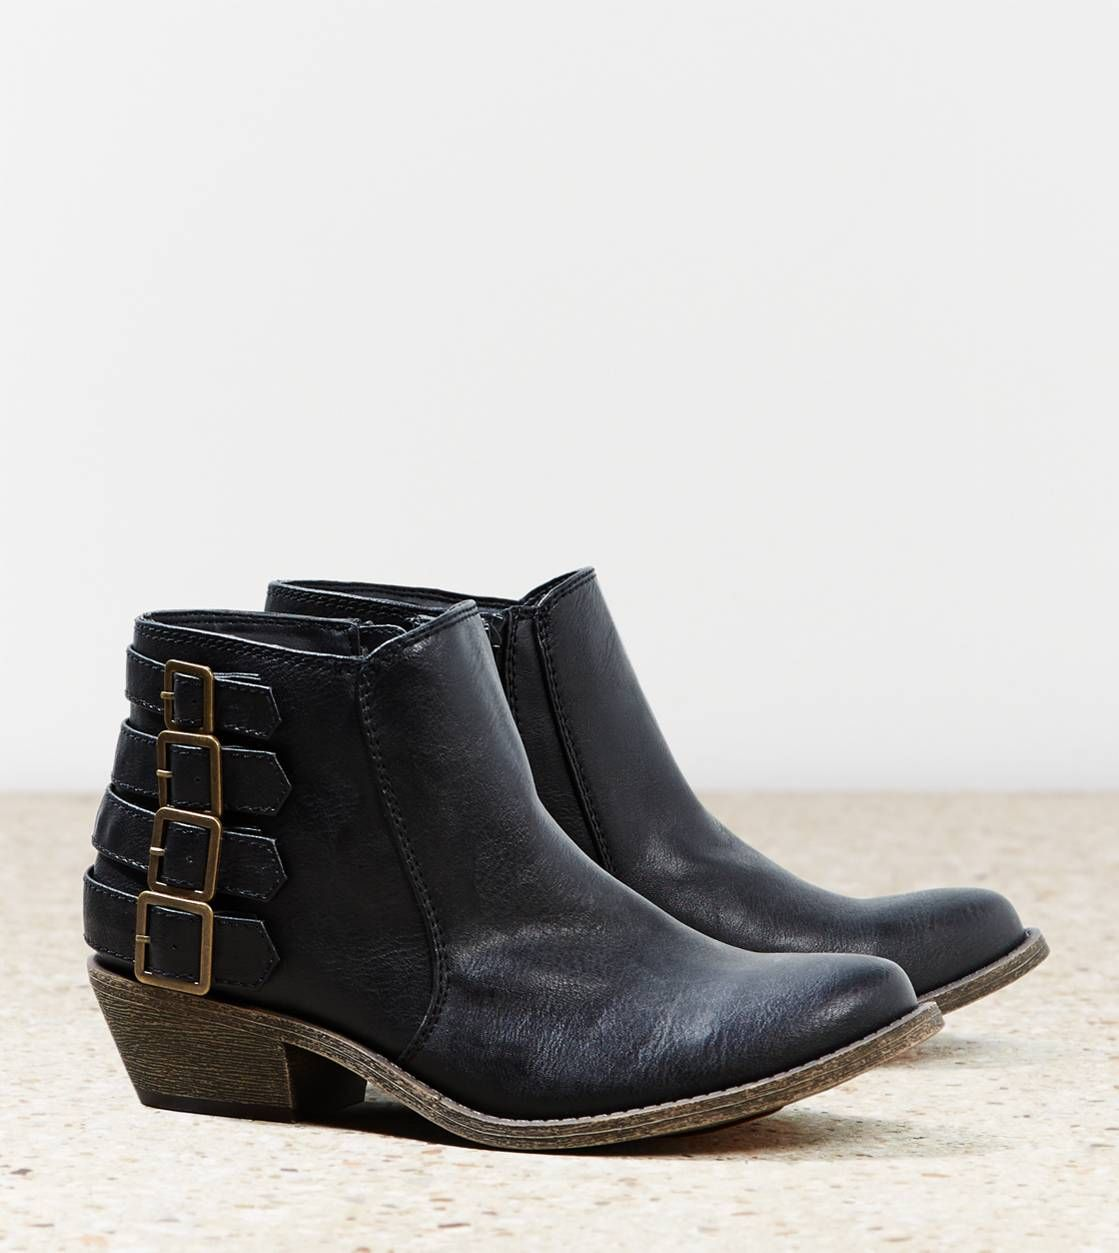 AEO Buckle Bootie | Black ankle boots and Aeo